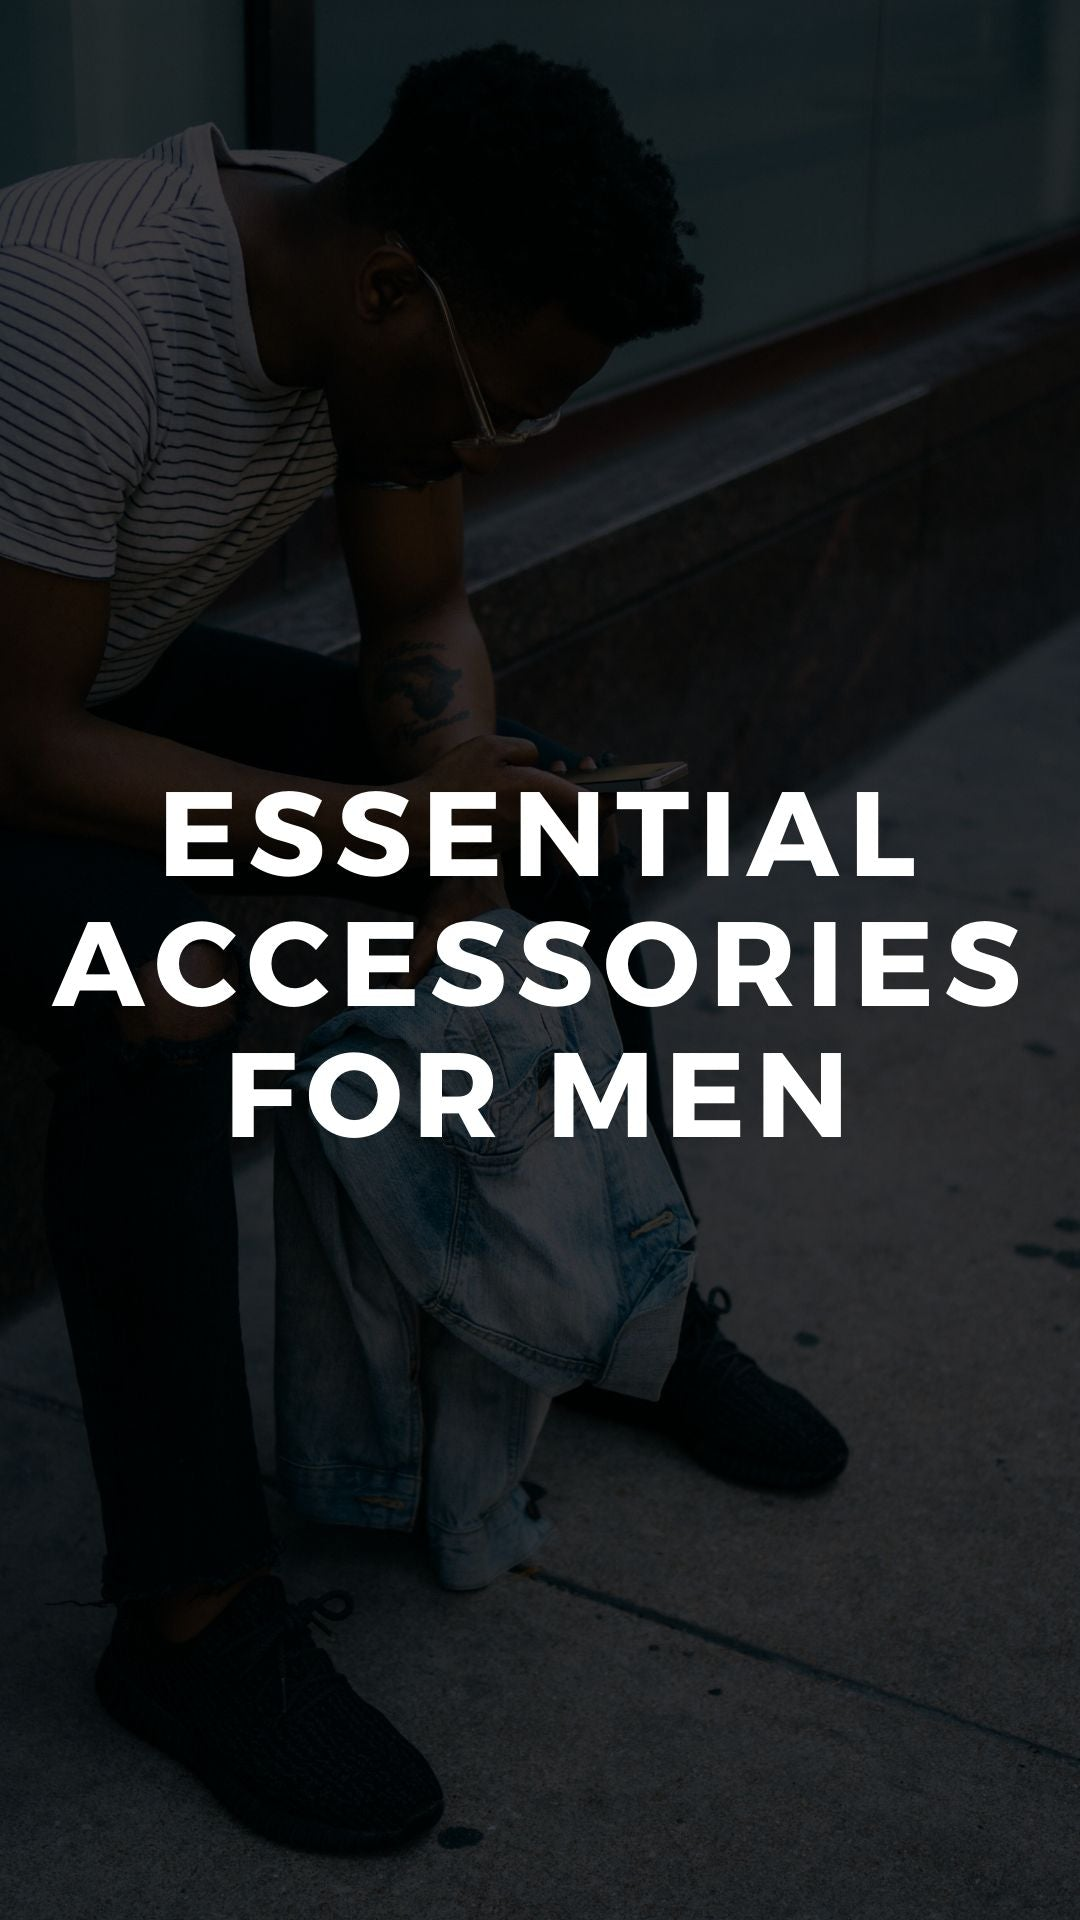 Essential Accessories For Men